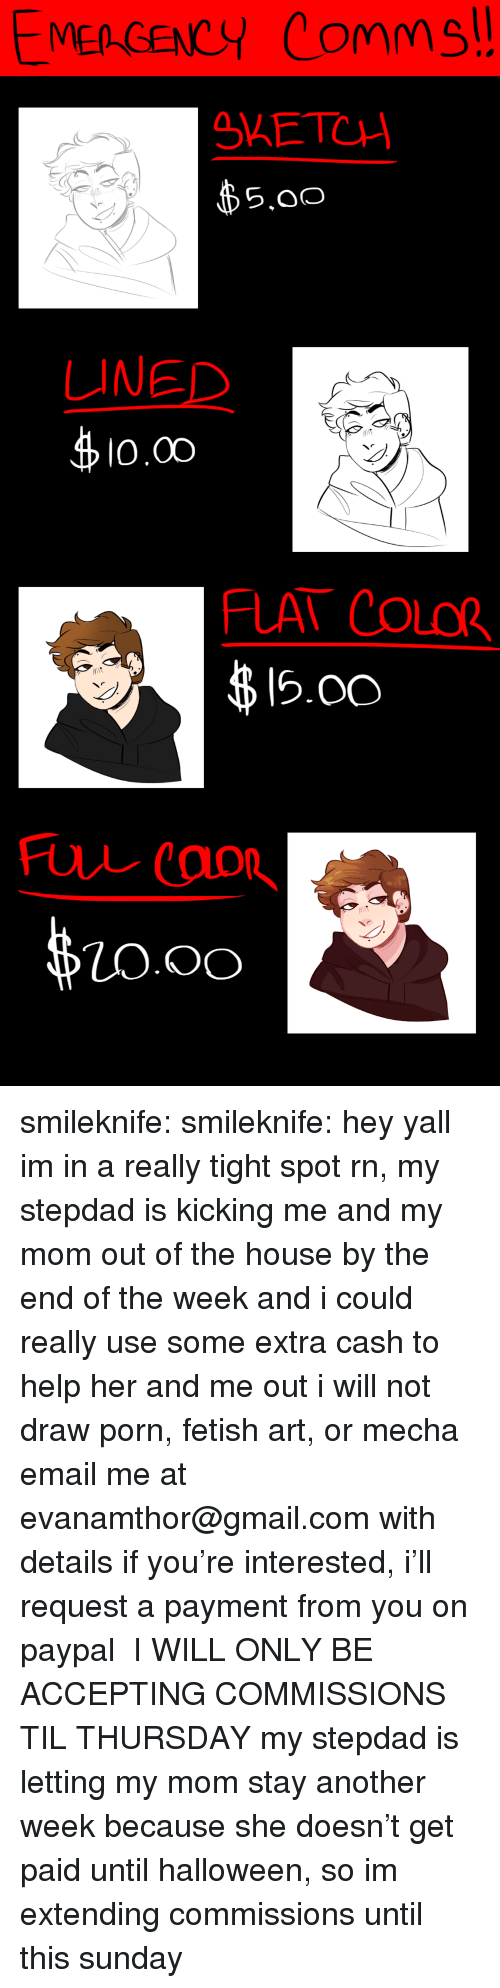 Halloween, Tumblr, and Blog: MEA GENCY Comms  SAETC  $5.00  S.oO  LINED  0.00  FLAT COLOR  弗1500  O.OO smileknife:  smileknife: hey yall im in a really tight spot rn, my stepdad is kicking me and my mom out of the house by the end of the week and i could really use some extra cash to help her and me out i will not draw porn, fetish art, or mecha email me at evanamthor@gmail.com with details if you're interested, i'll request a payment from you on paypal  I WILL ONLY BE ACCEPTING COMMISSIONS TIL THURSDAY   my stepdad is letting my mom stay another week because she doesn't get paid until halloween, so im extending commissions until this sunday